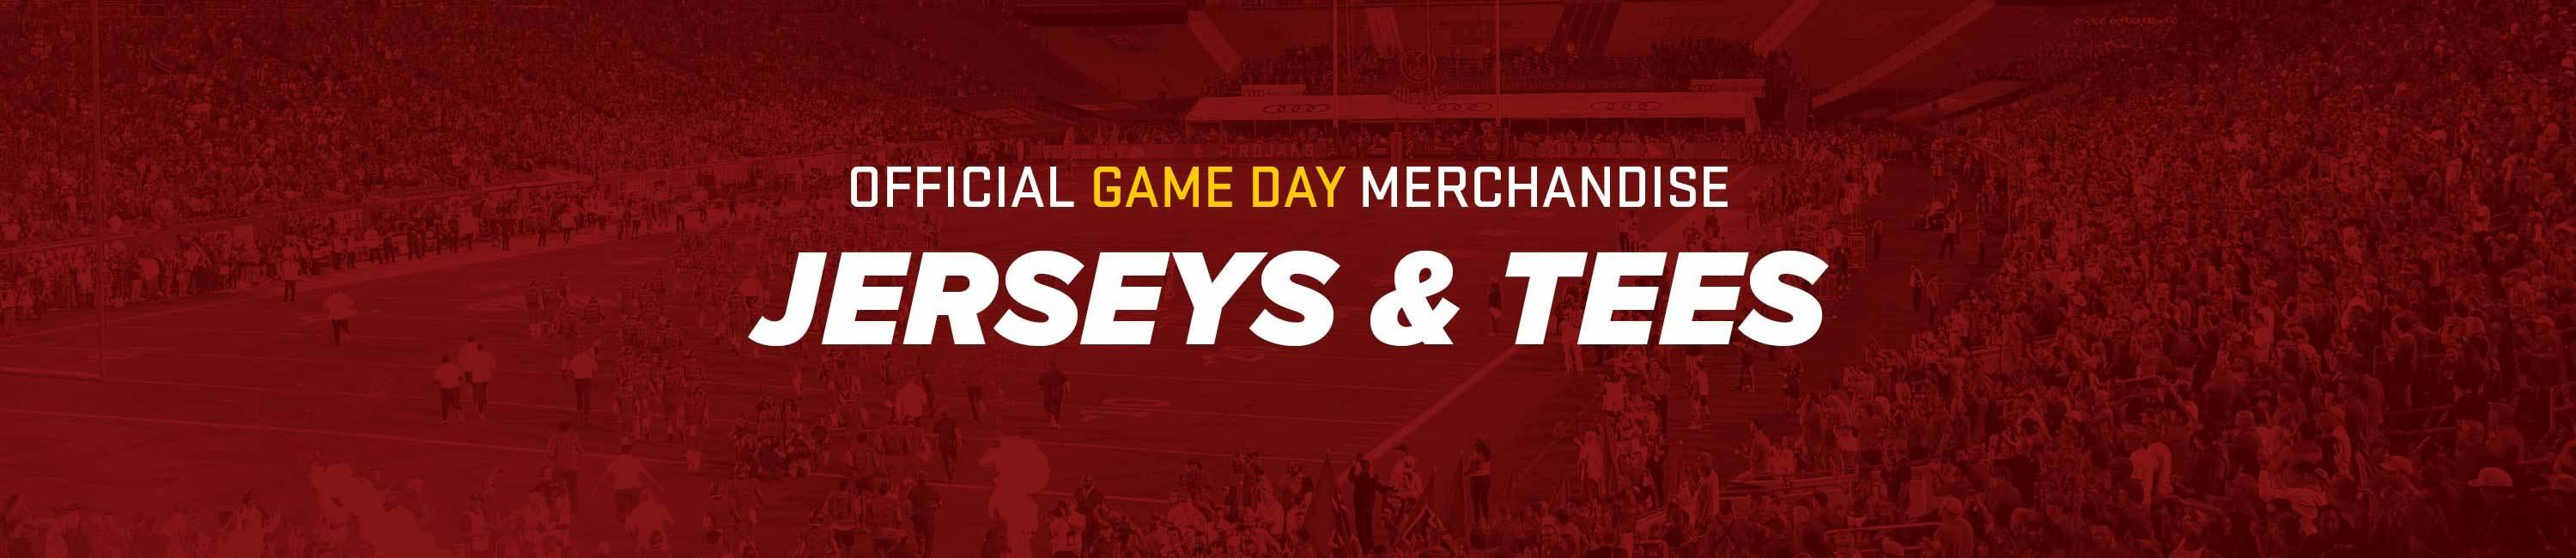 USC Official Game Day Jerseys & Tees